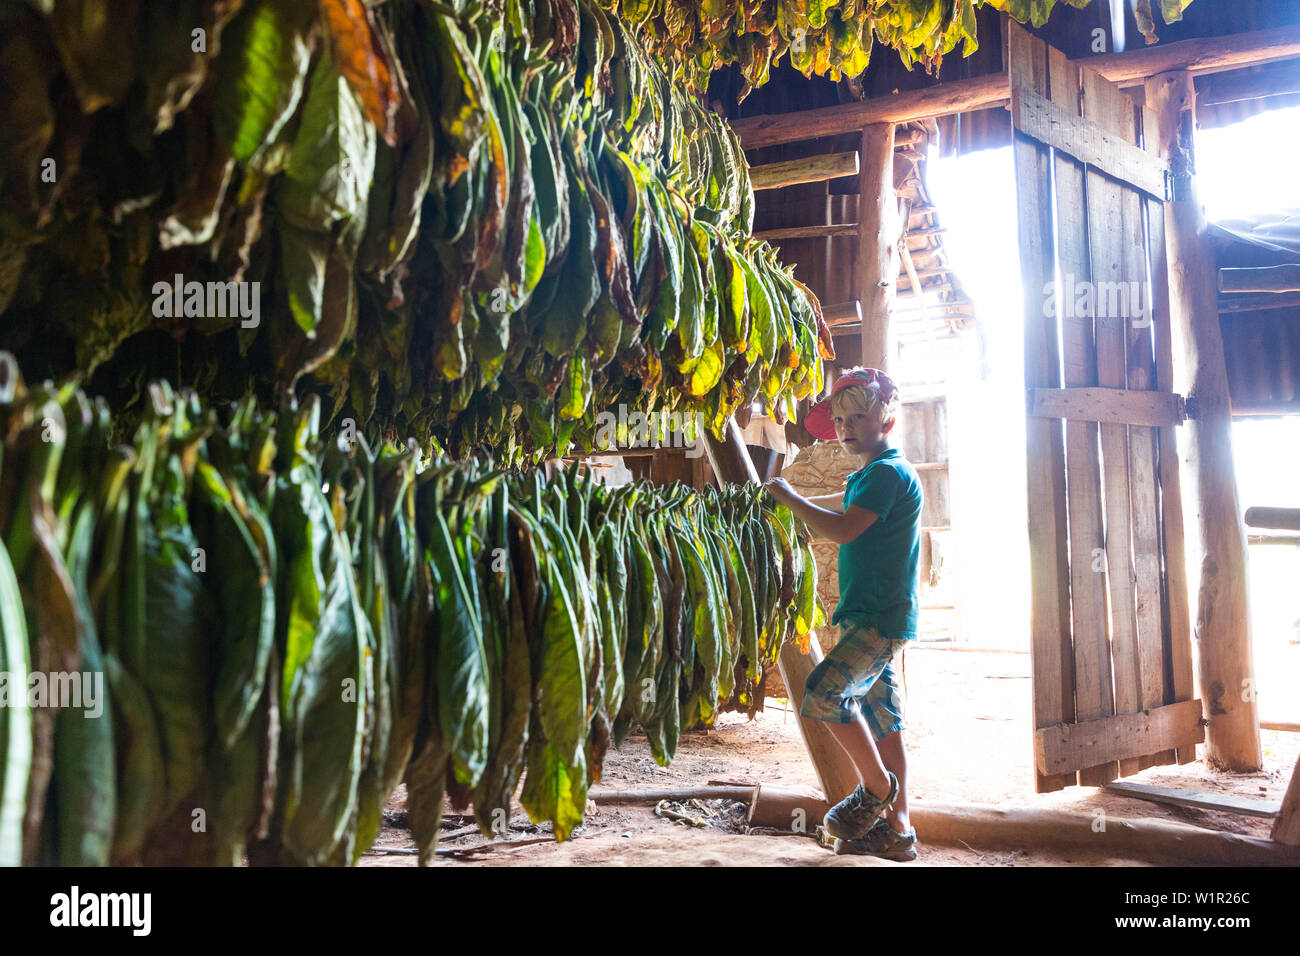 Boy looking at tobacco leaves hung up to dry, best tobacco region in the world, cigars, fields in Vinales, beautiful nature, family travel to Cuba, pa - Stock Image